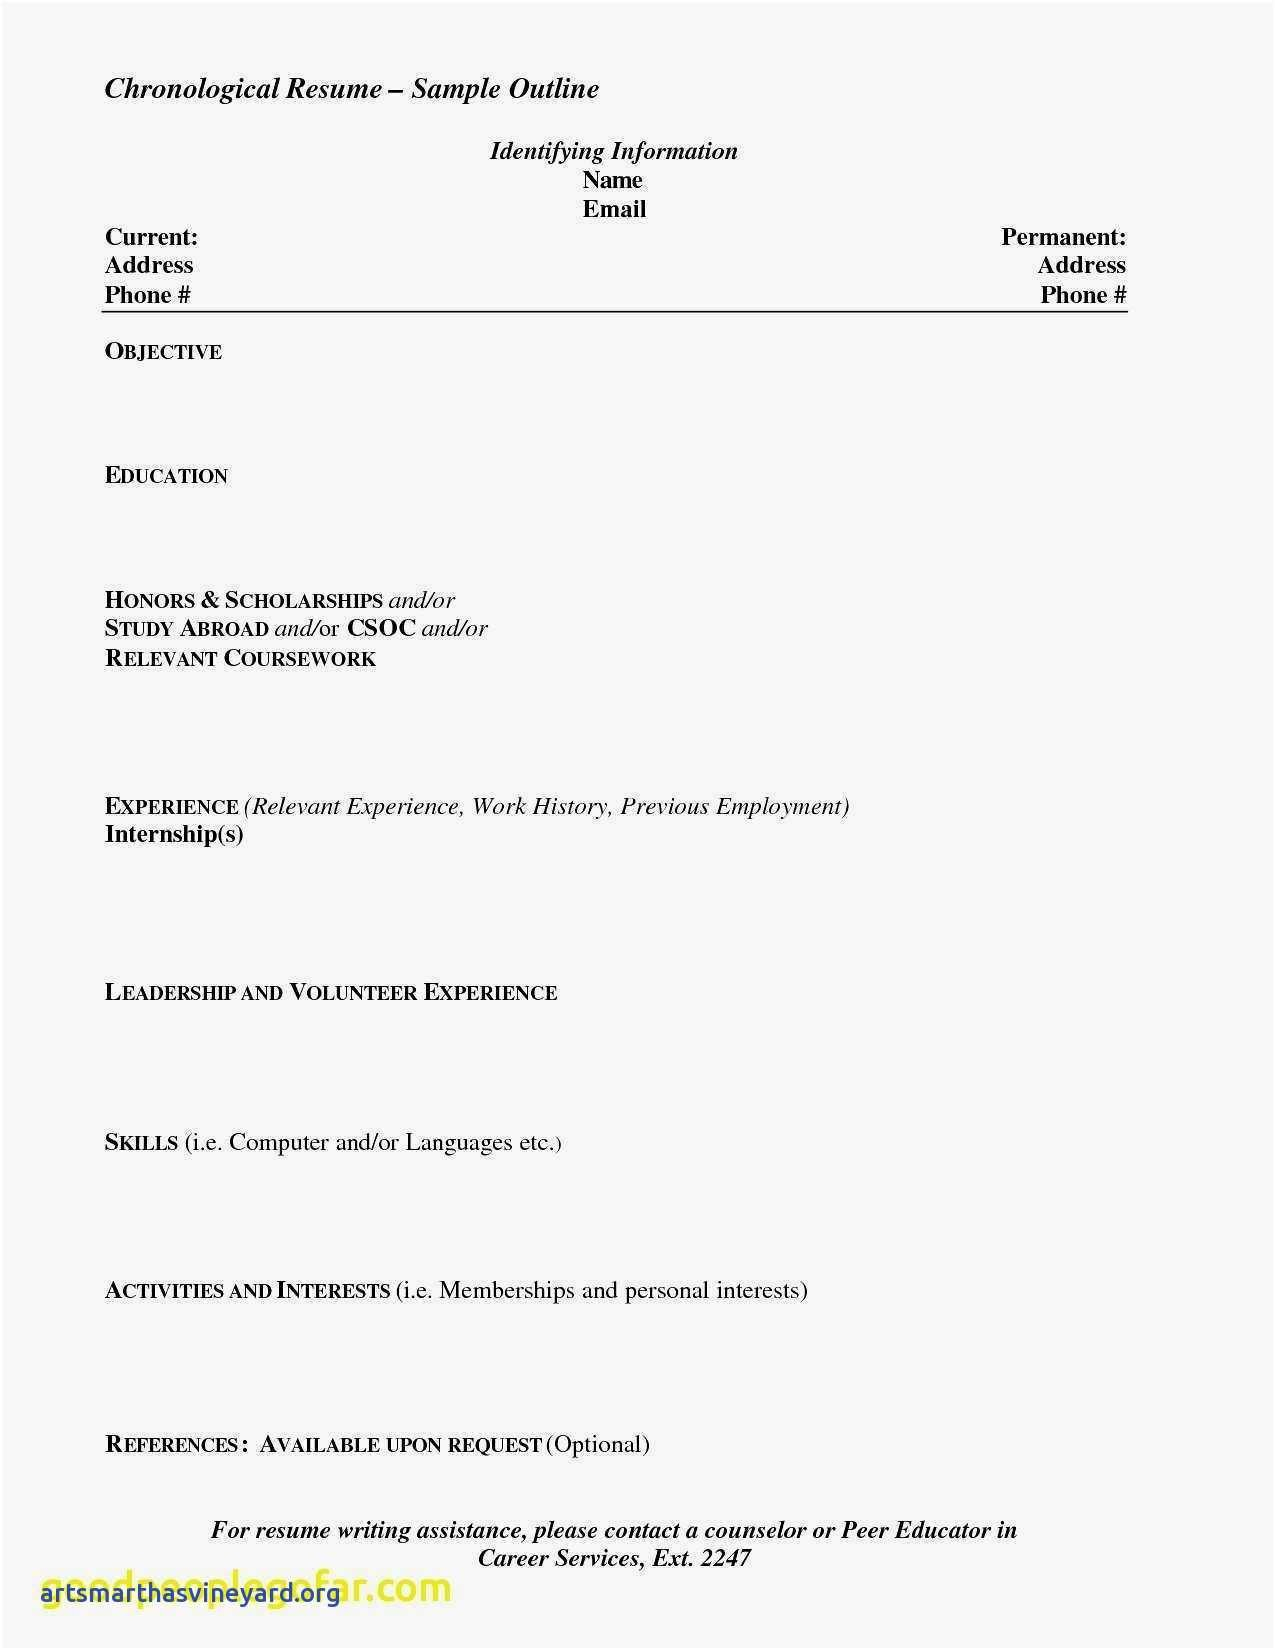 Resume Creator for Students - How to Create A Resume Best Unique Resume for Highschool Students